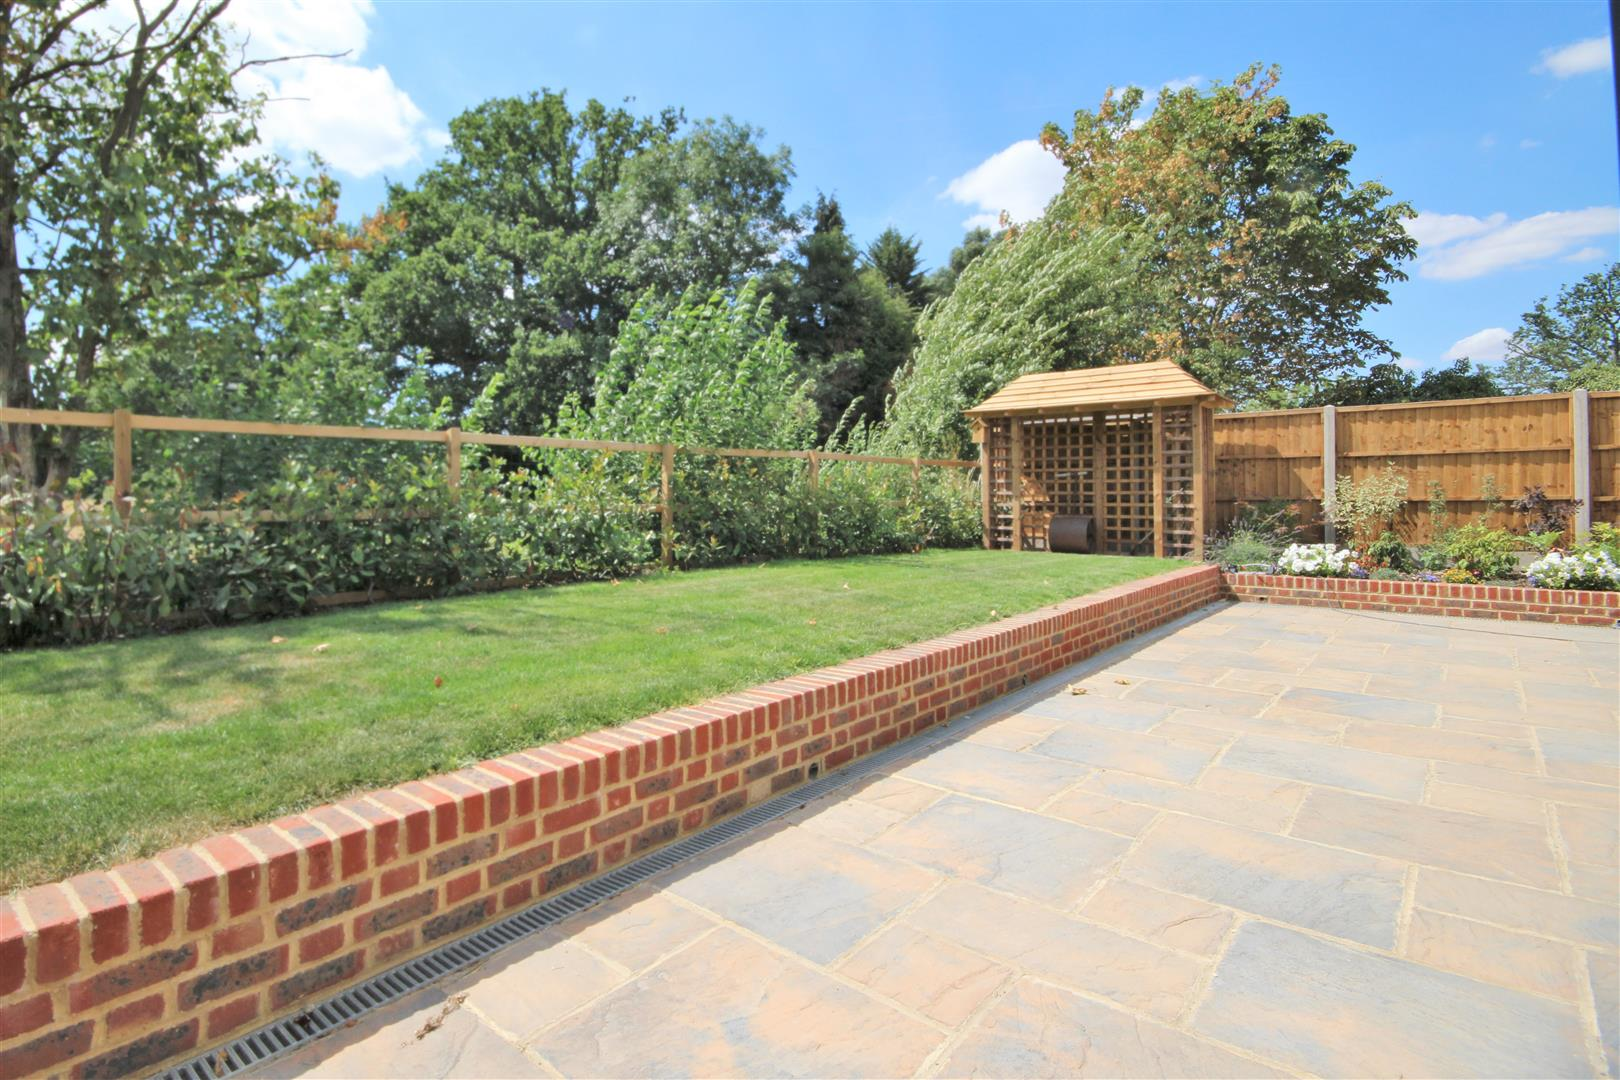 4 bed for sale in London Road, Shenley - (Property Image 6)